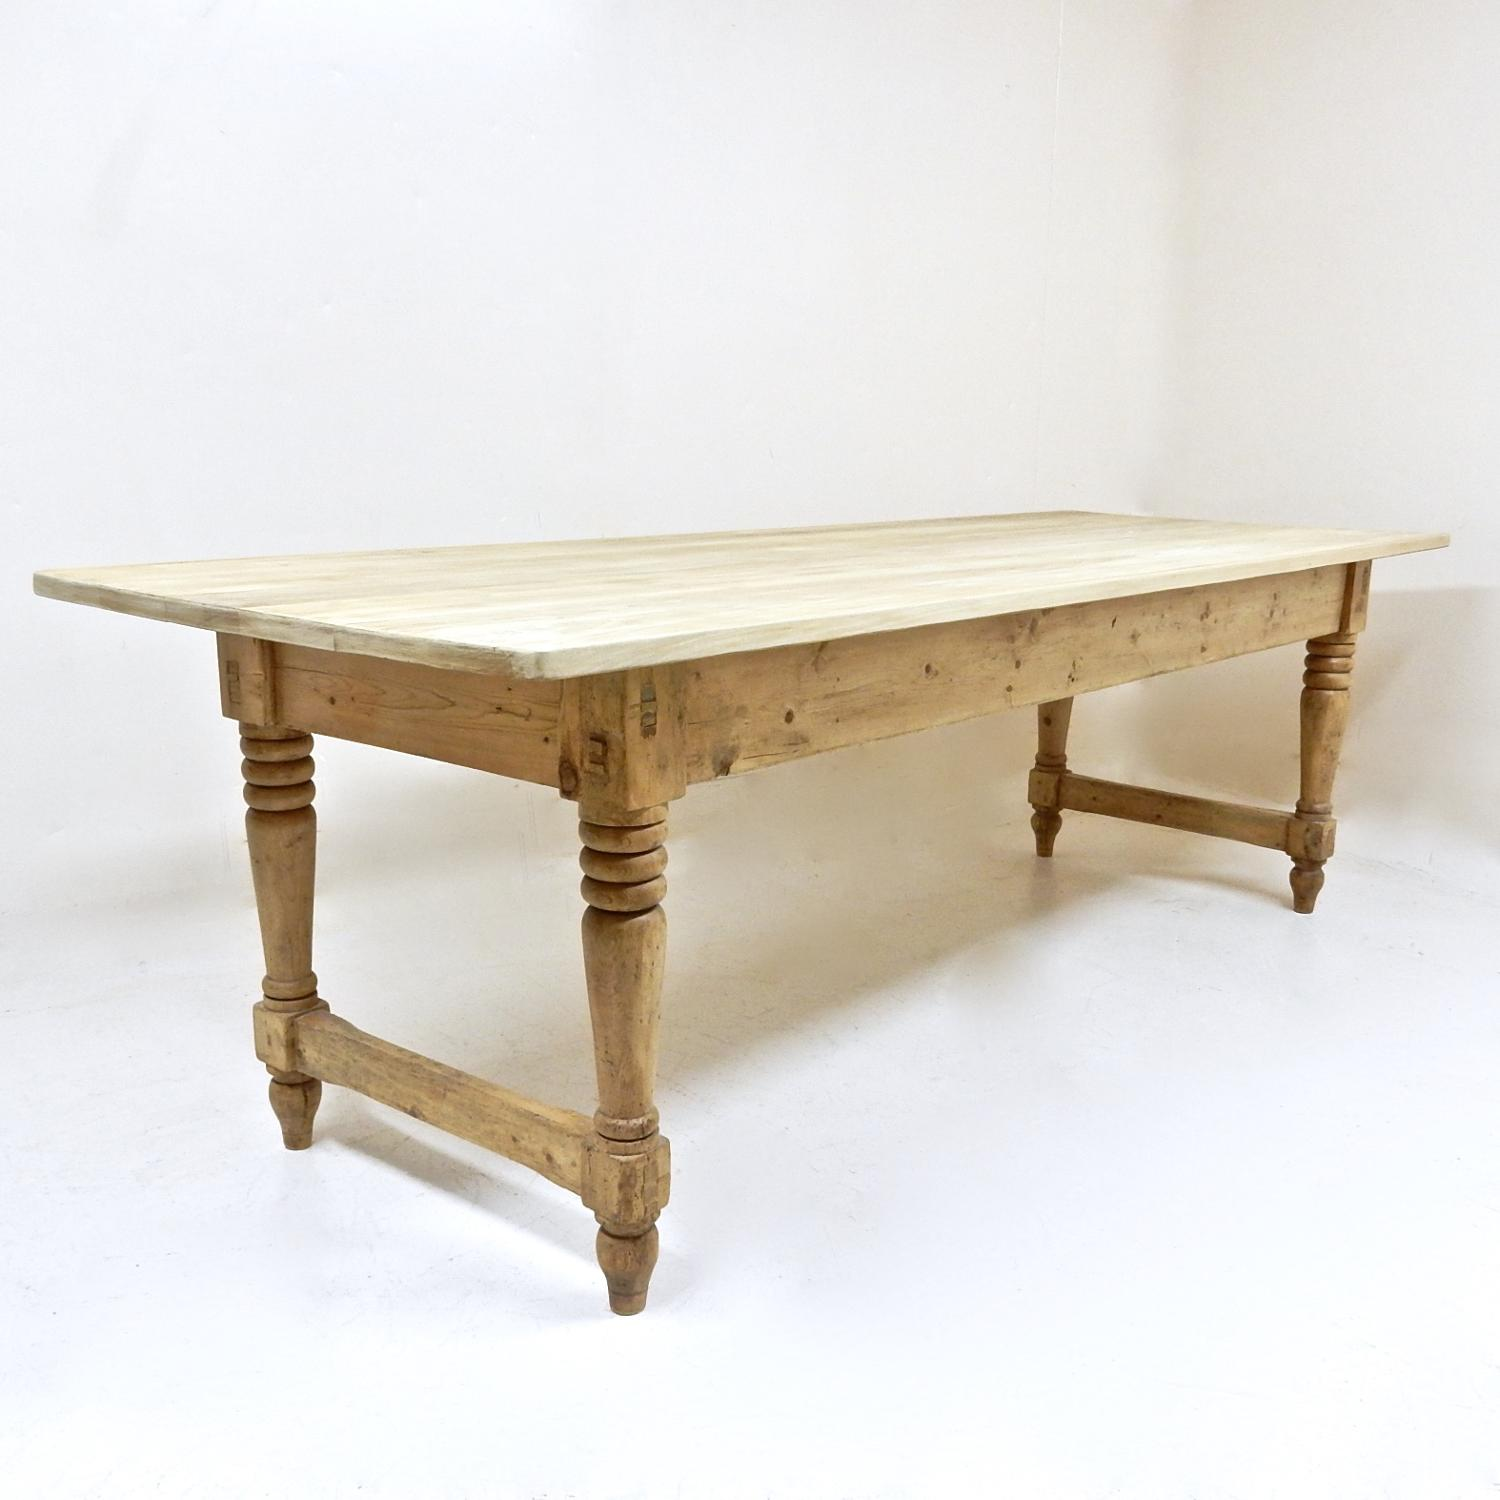 Antique Pine Refectory Table